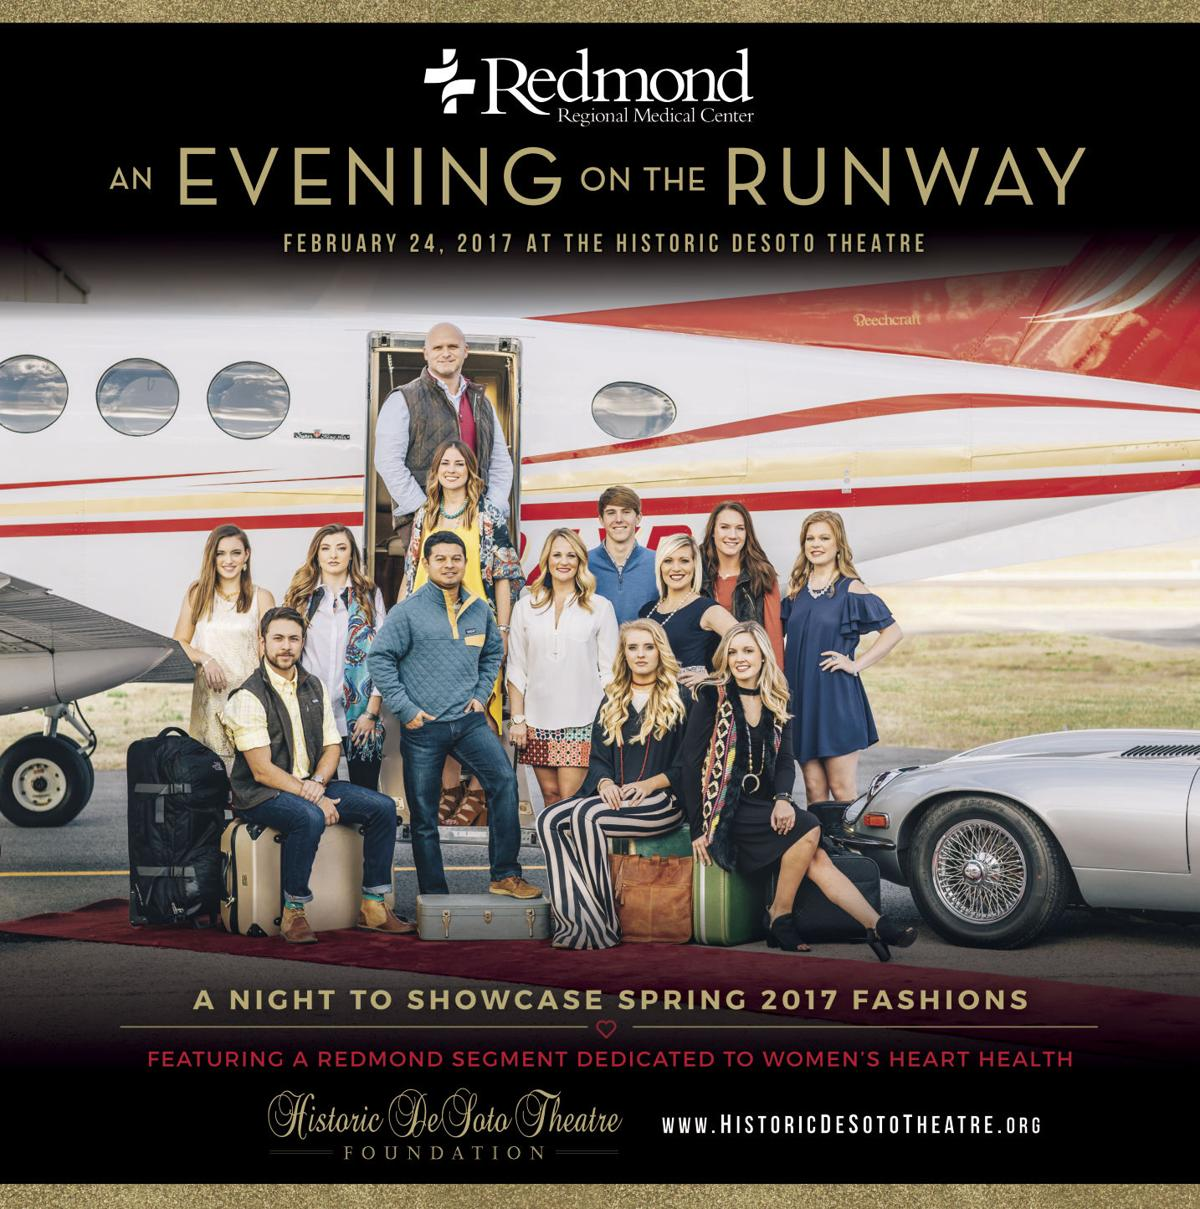 An Evening on the Runway